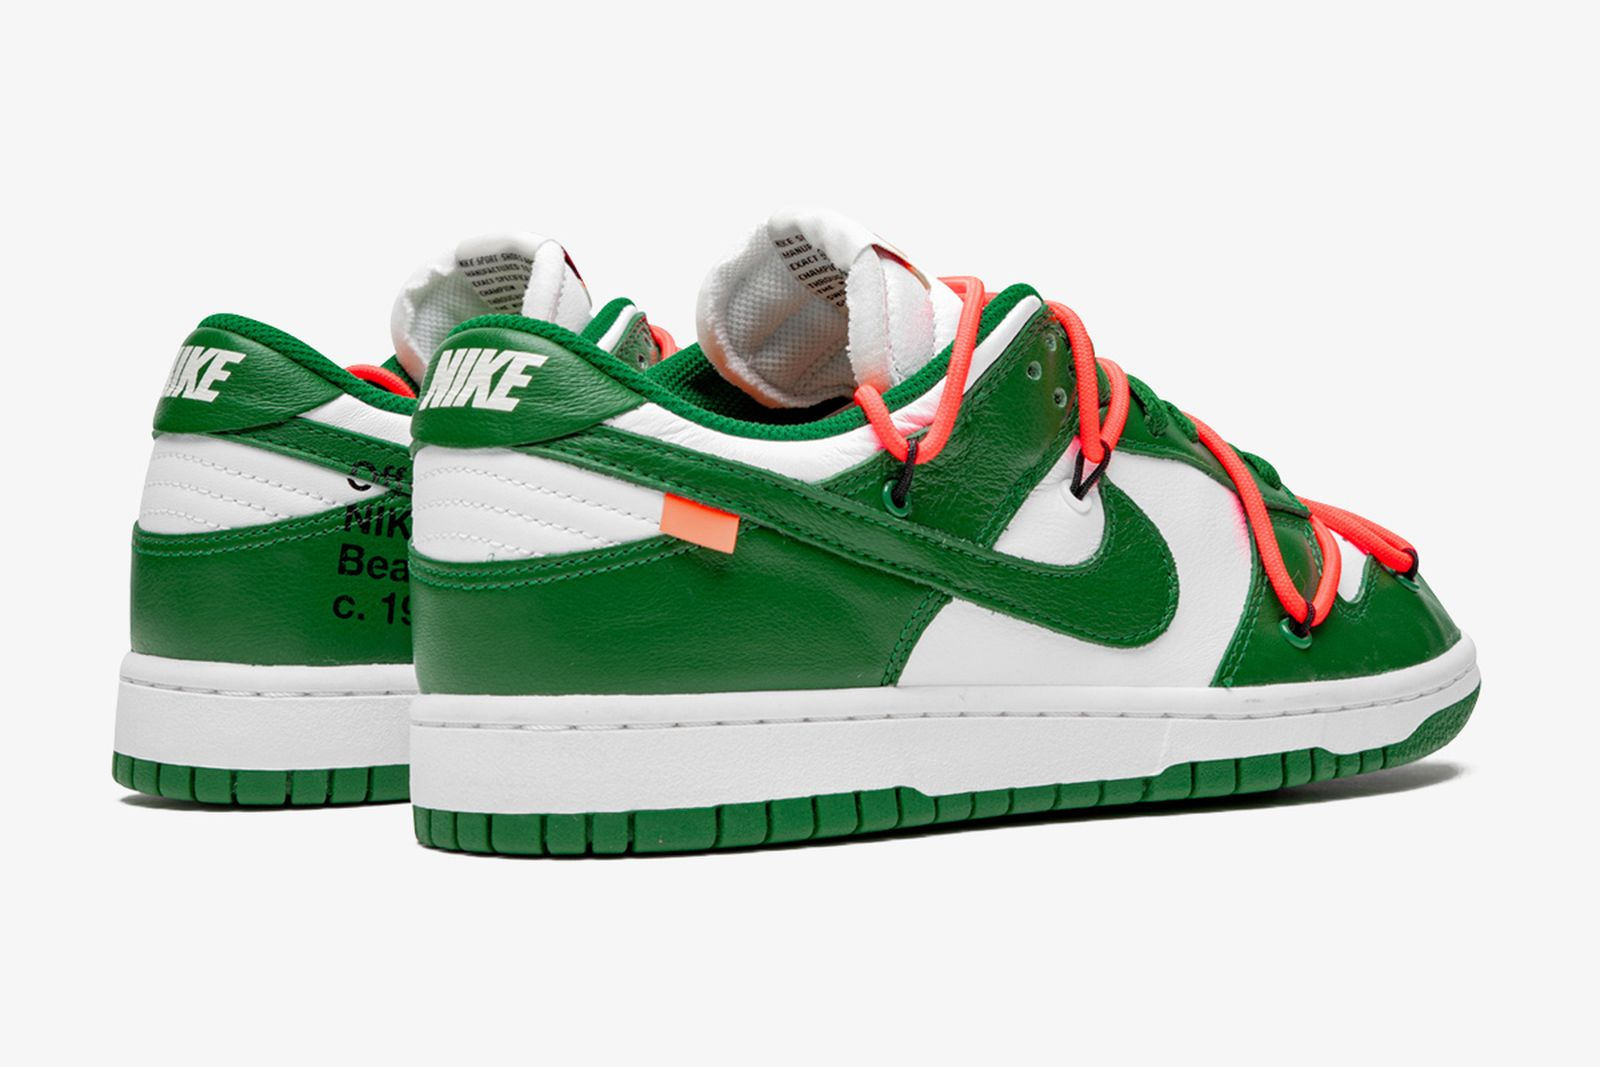 off-white-nike-dunk-low-green-release-date-price-sg-03